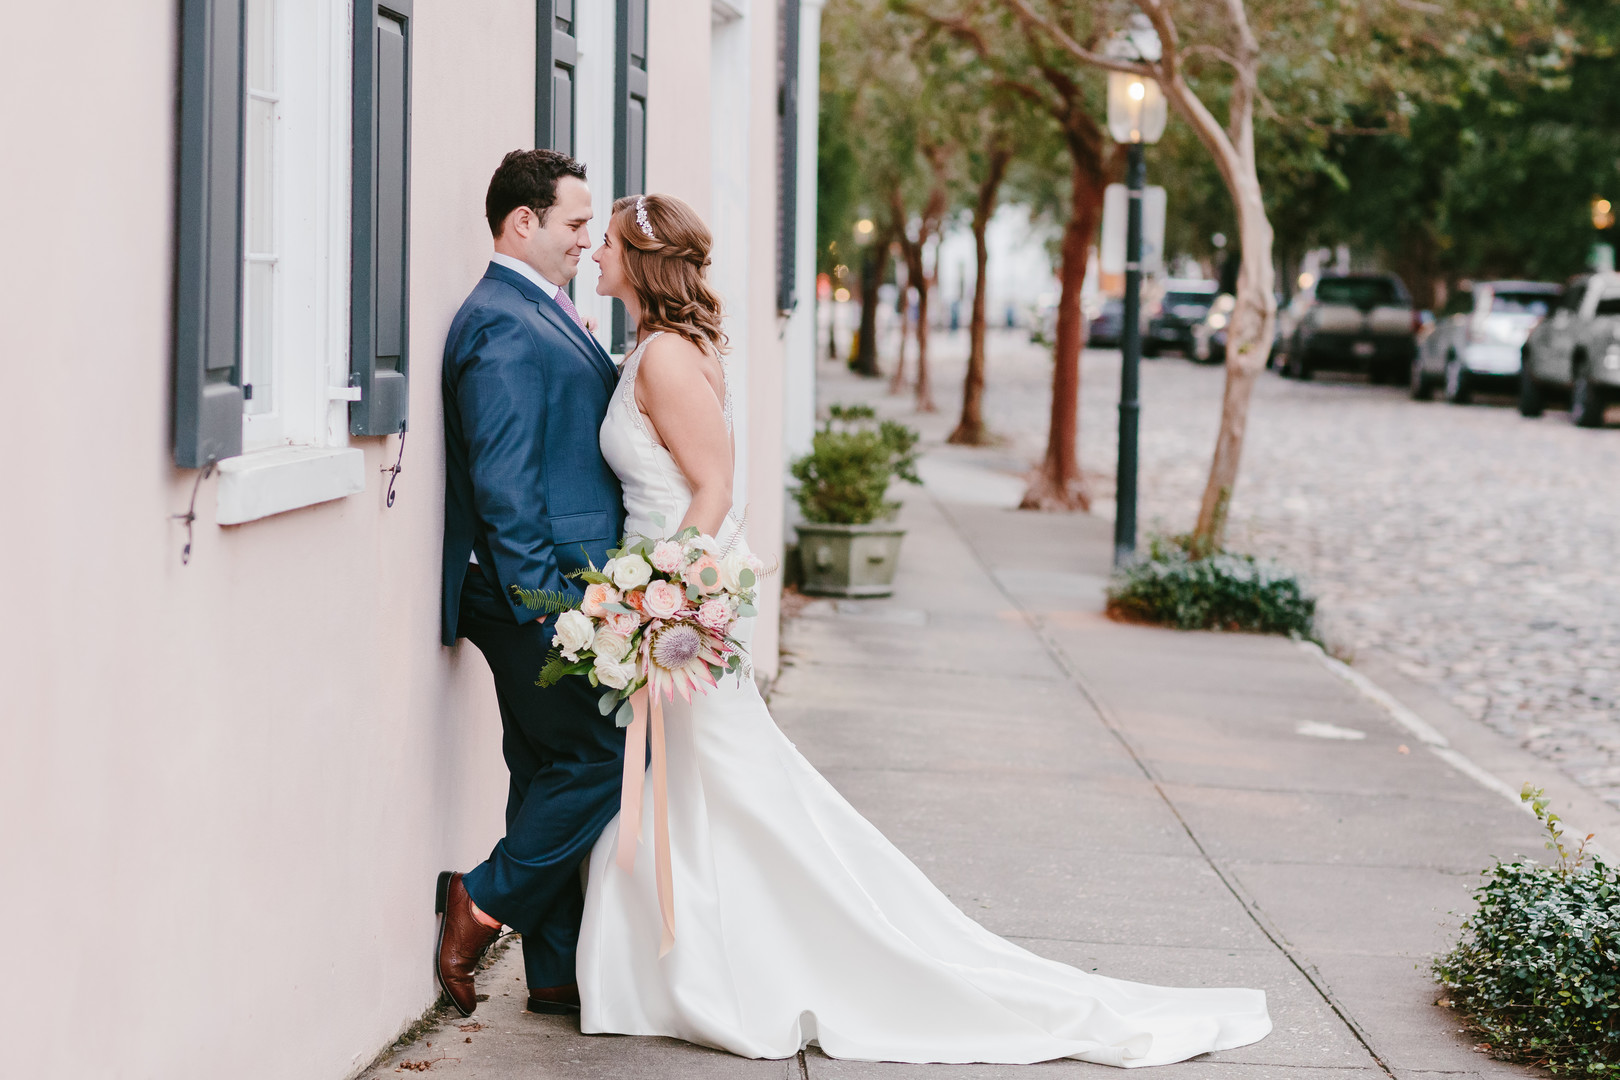 When to Visit Your Out of Town Wedding Destination